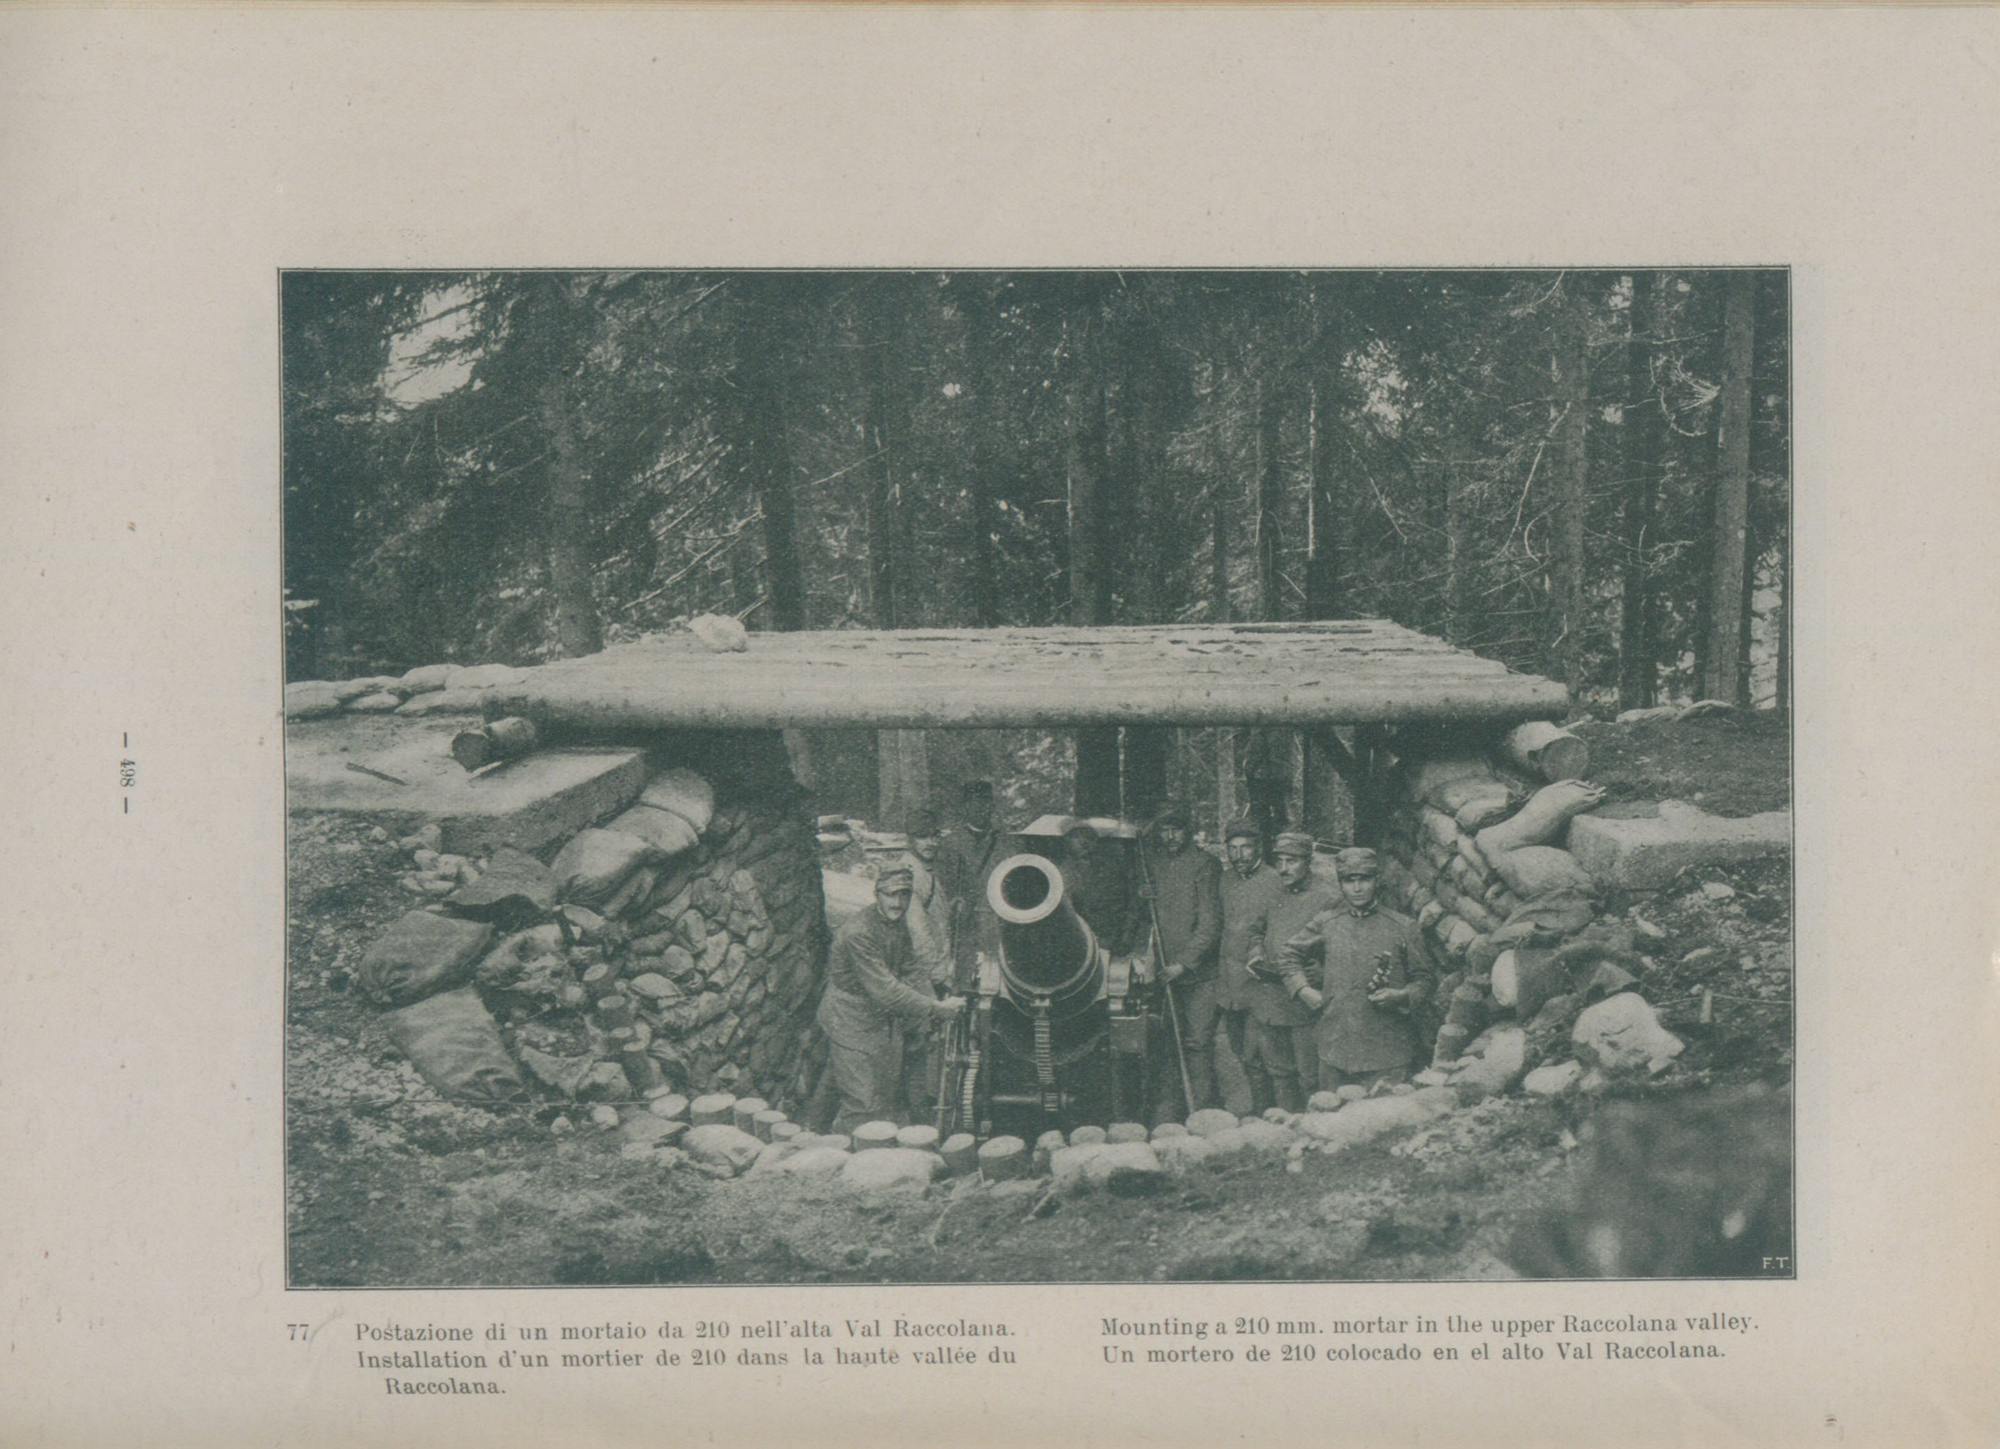 A 210mm Italian mortar mounted in the upper Raccalona Valley.